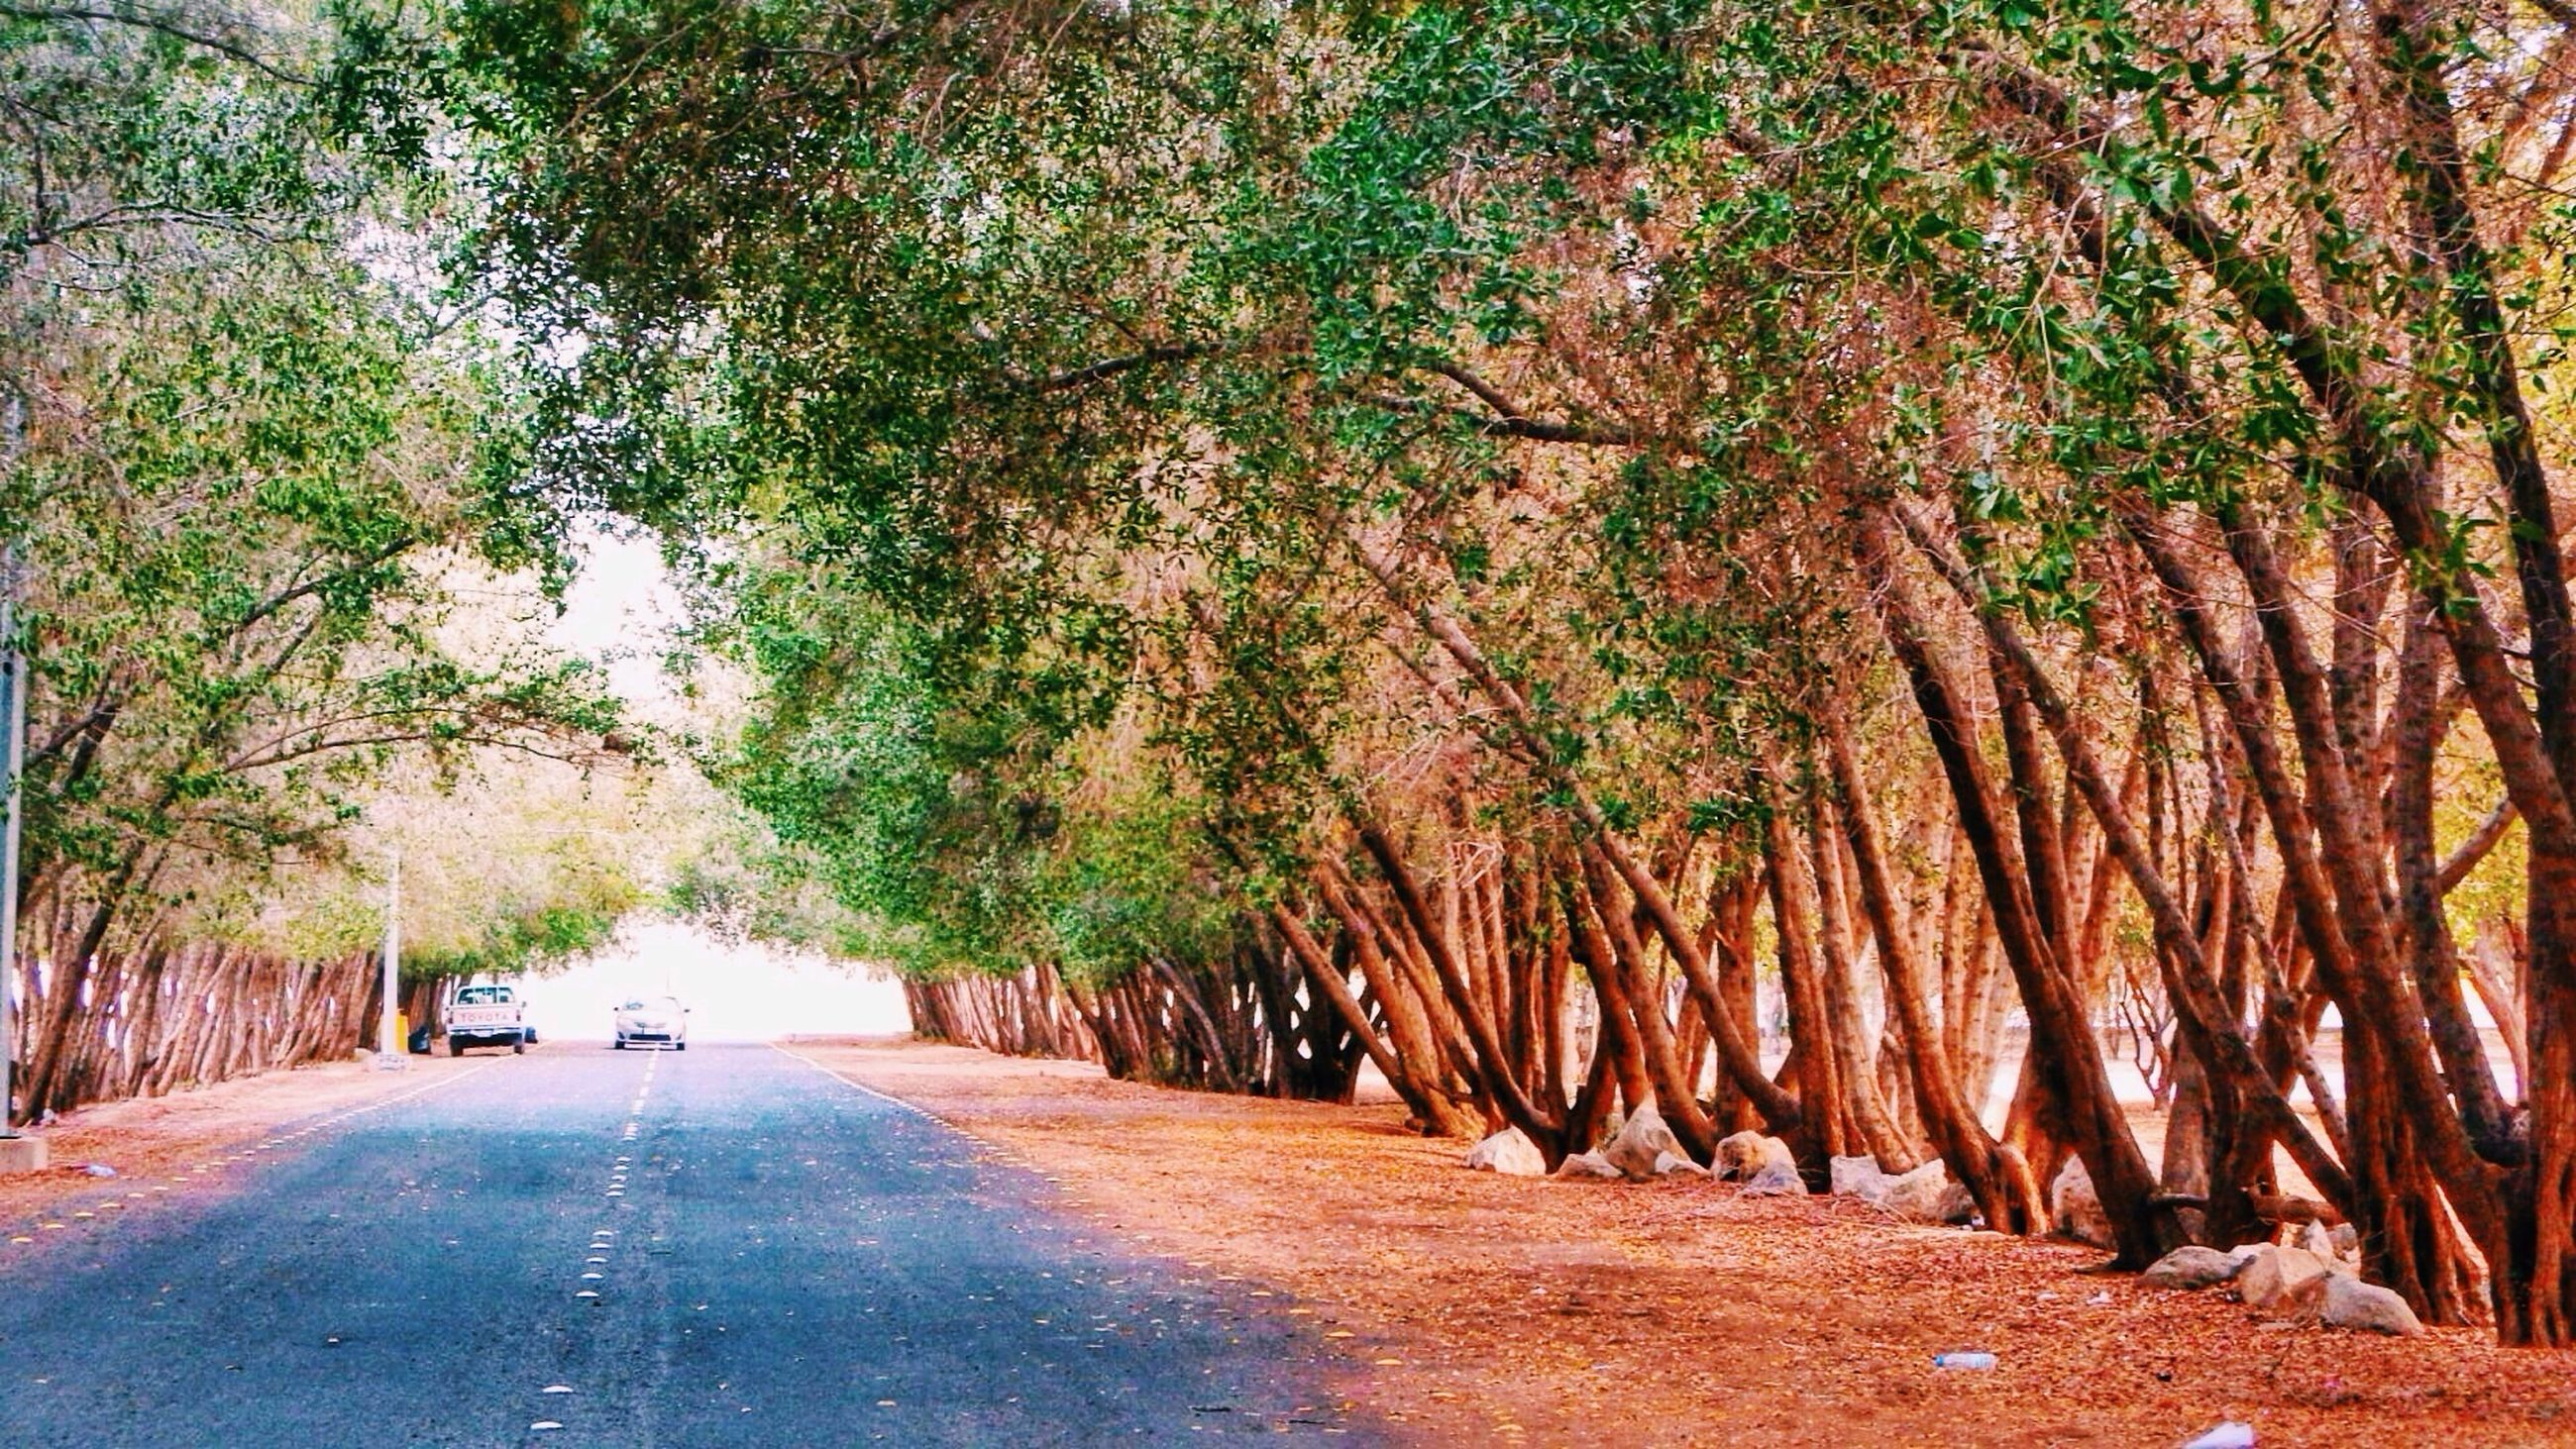 tree, the way forward, diminishing perspective, treelined, road, growth, vanishing point, footpath, street, transportation, tranquility, green color, nature, tree trunk, empty road, empty, branch, walkway, tranquil scene, in a row